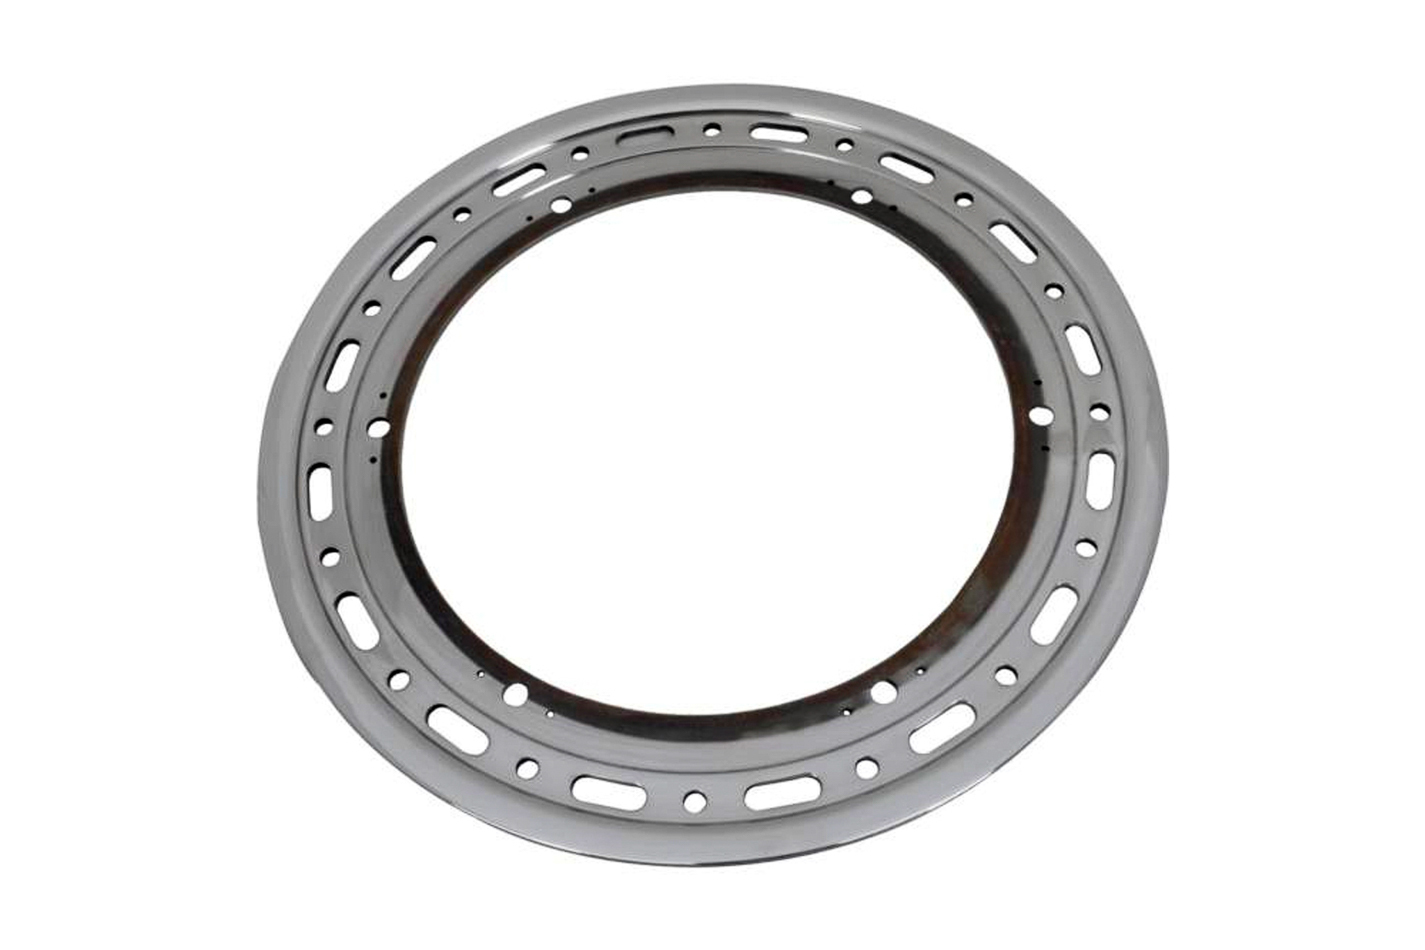 Weld Racing 15in Ring For Dzus On 6-Hole Cover - 1pc